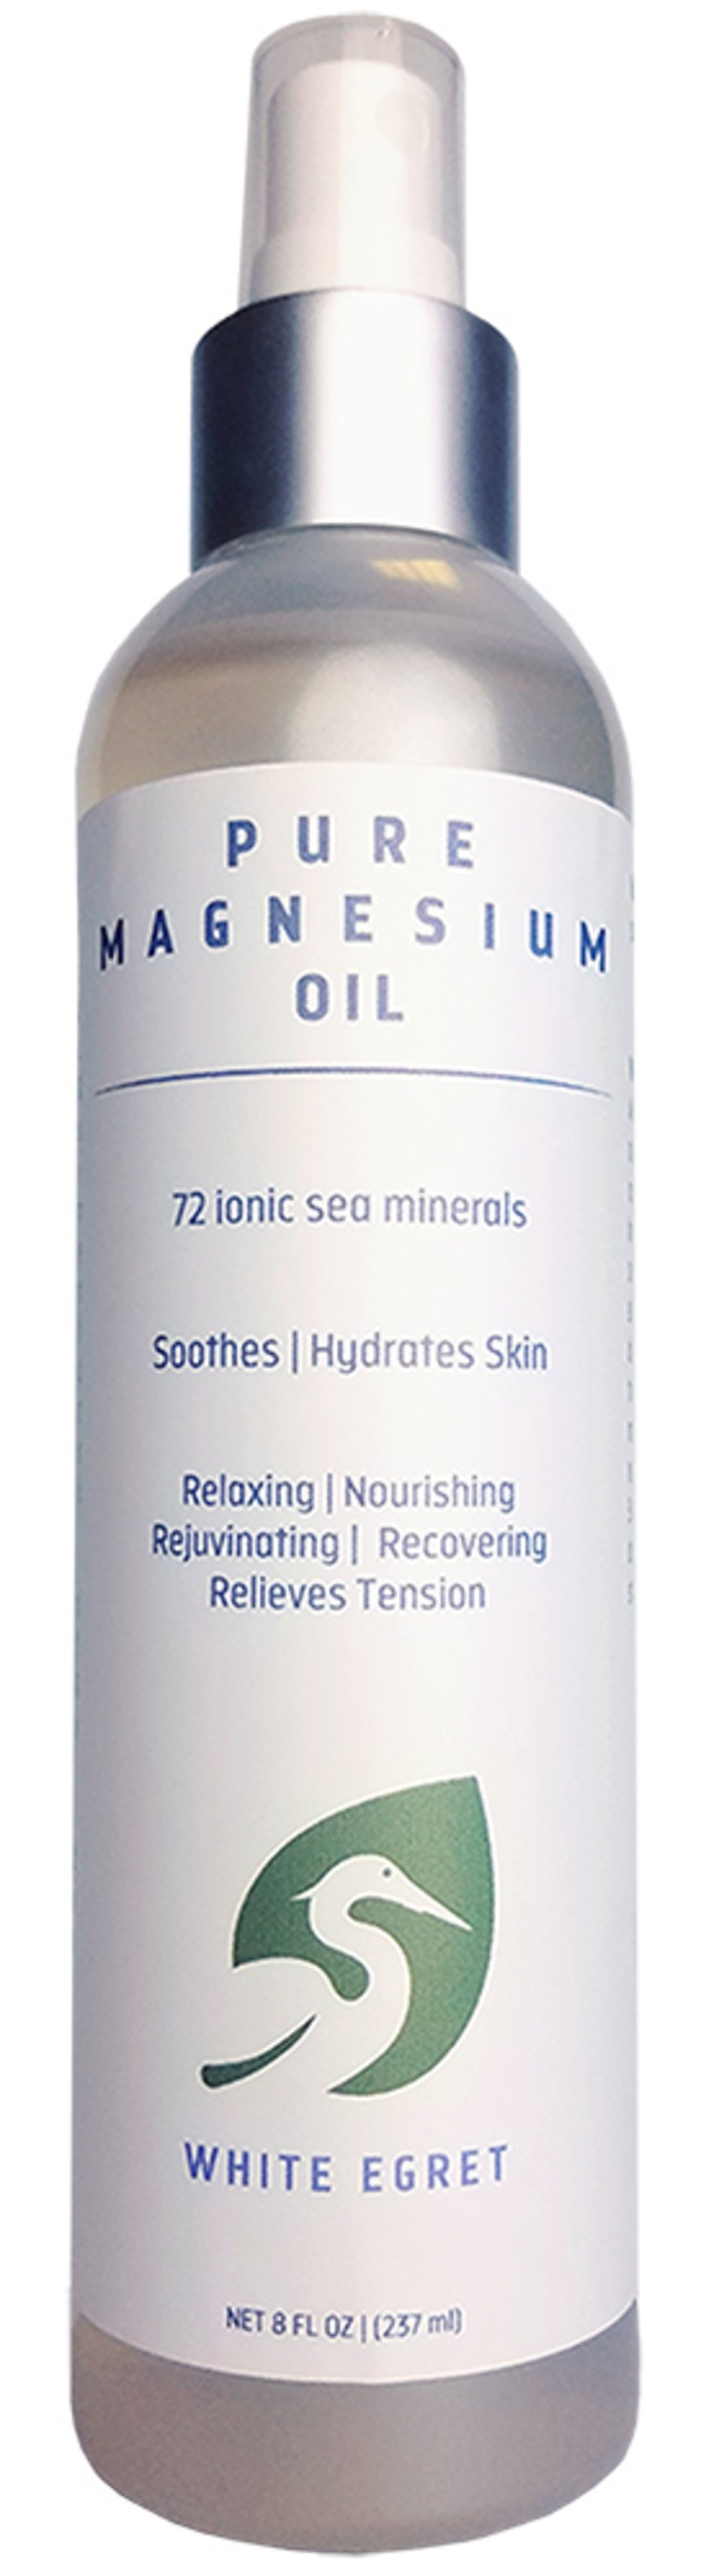 Pure Magnesium Oil <p><strong>From the Manufacturer's Label:</strong></p><p><strong>From Utah's ancient inland sea, the Great Salt Lake*</strong></p><p><strong>A rapidly absorbed topical spray</strong></p><p><strong>All Natural and Concentrated</strong></p><p>*The Great Salt Lake in Utah is a mineral-rich inland sea and is a remnant of the ancient Lake Bonneville, the largest lake of the